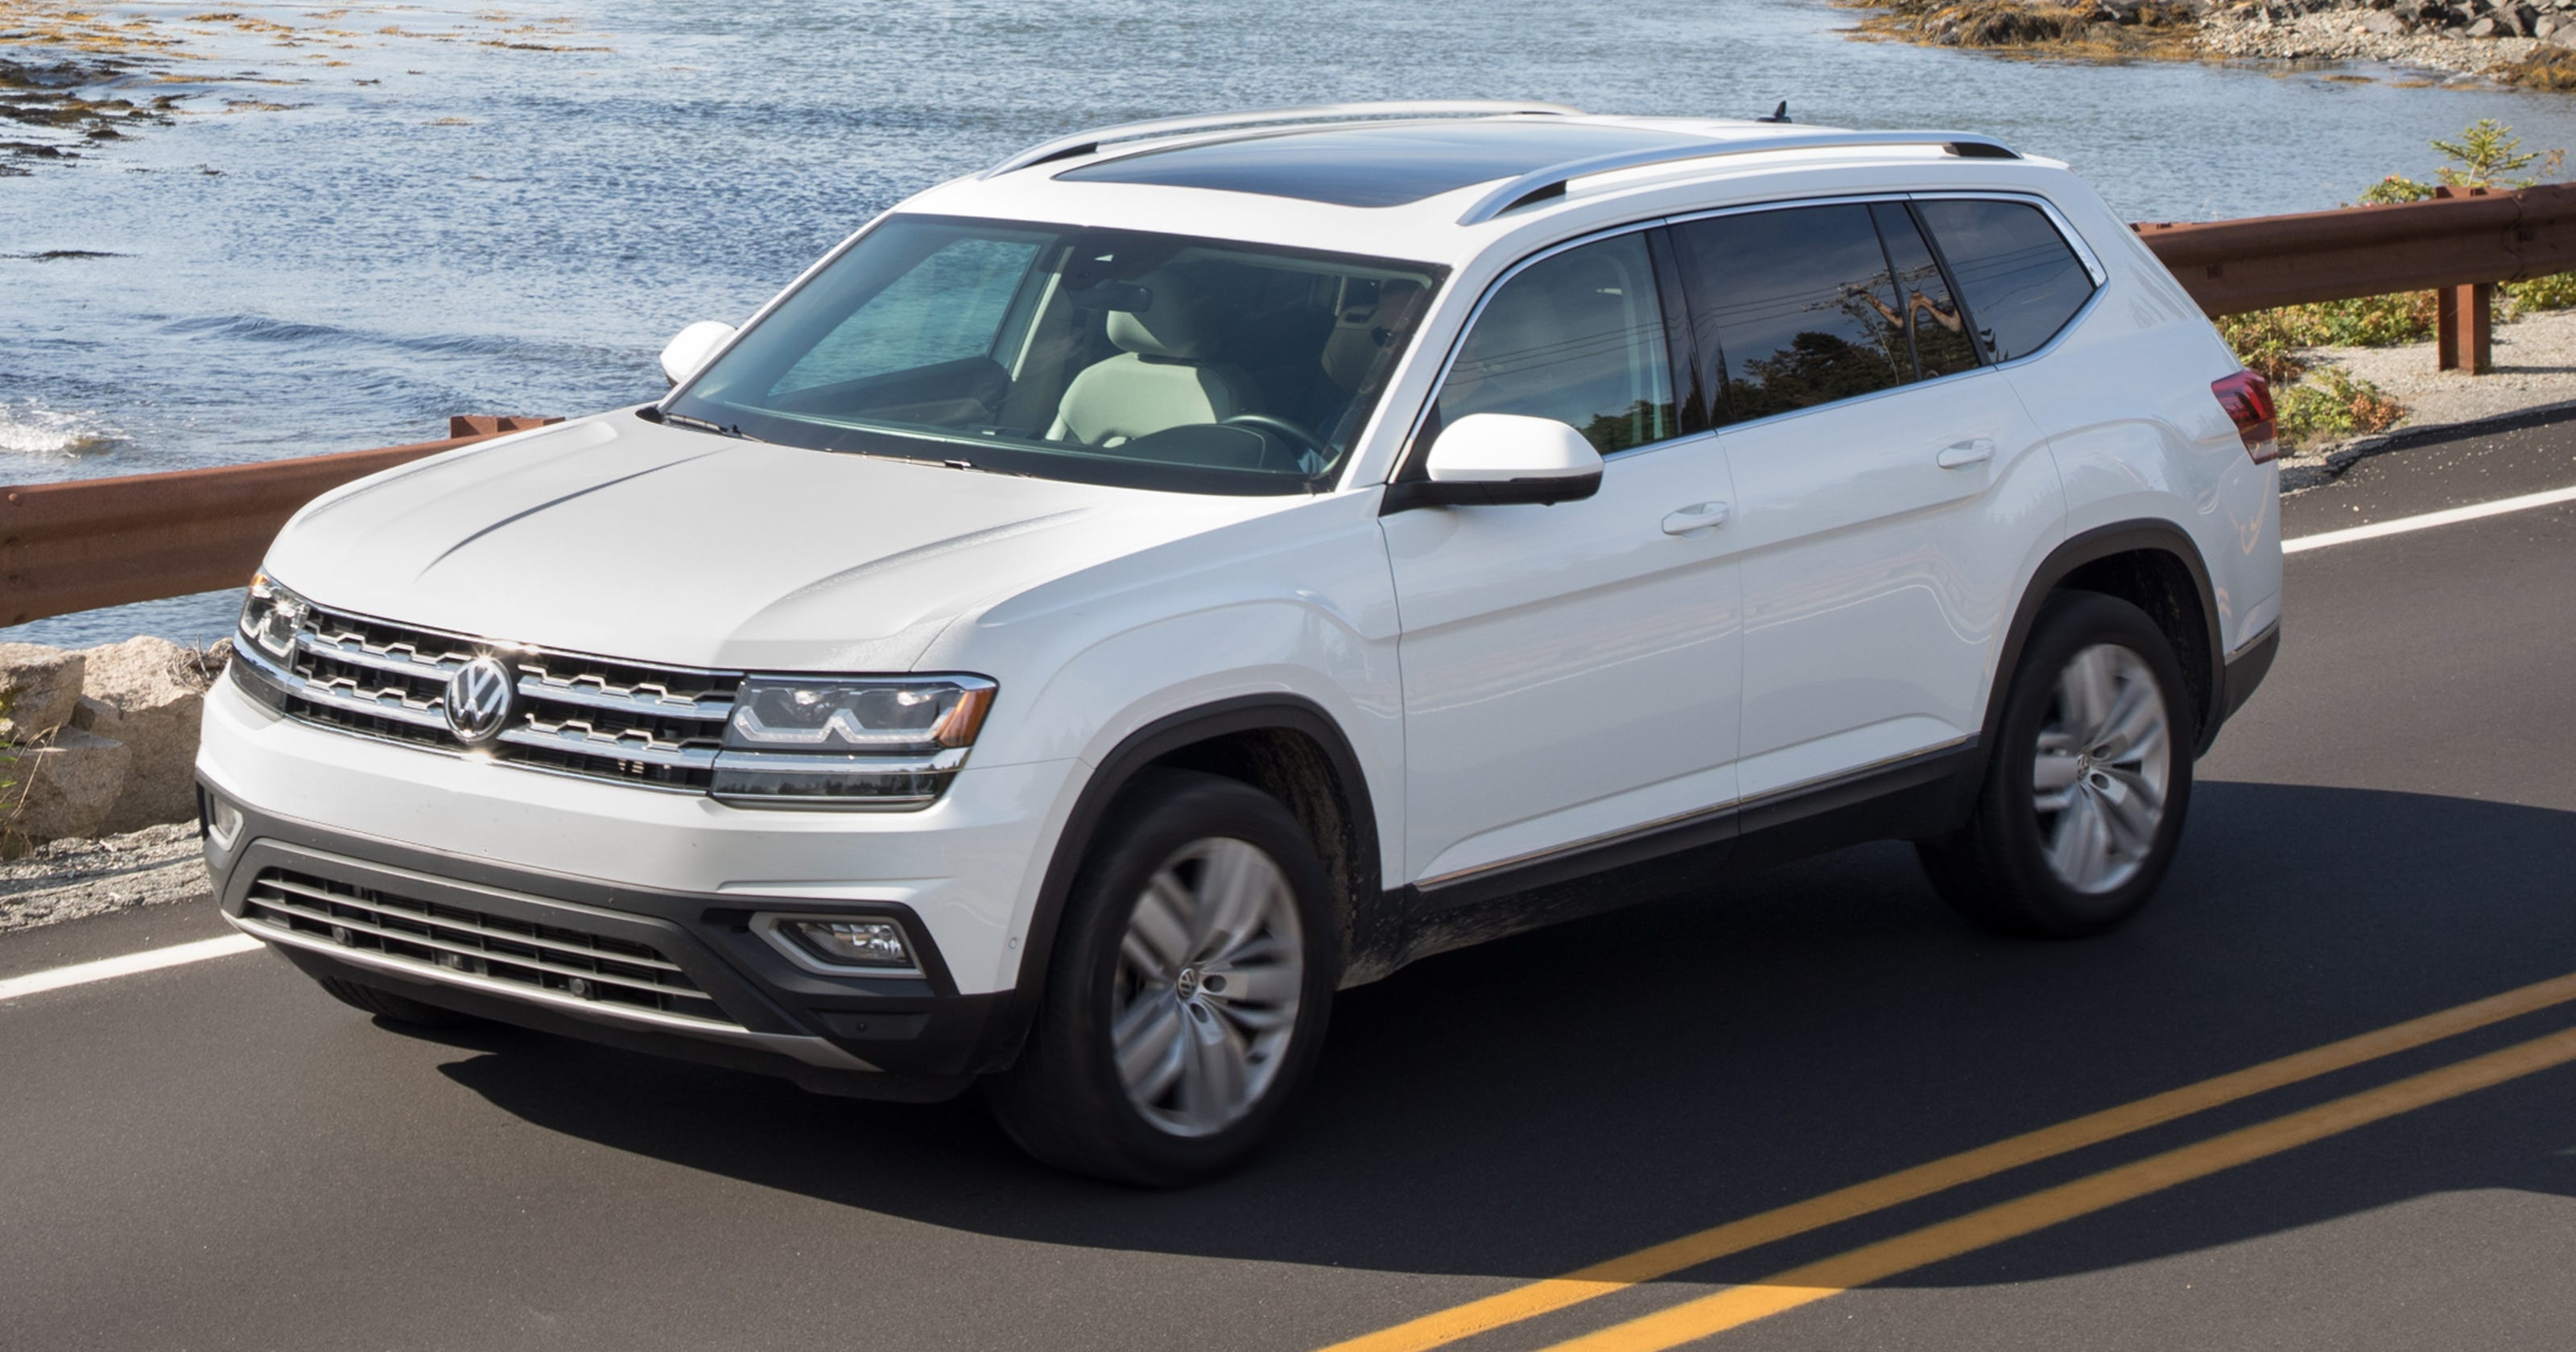 Review: Volkswagen Atlas carries its weight well